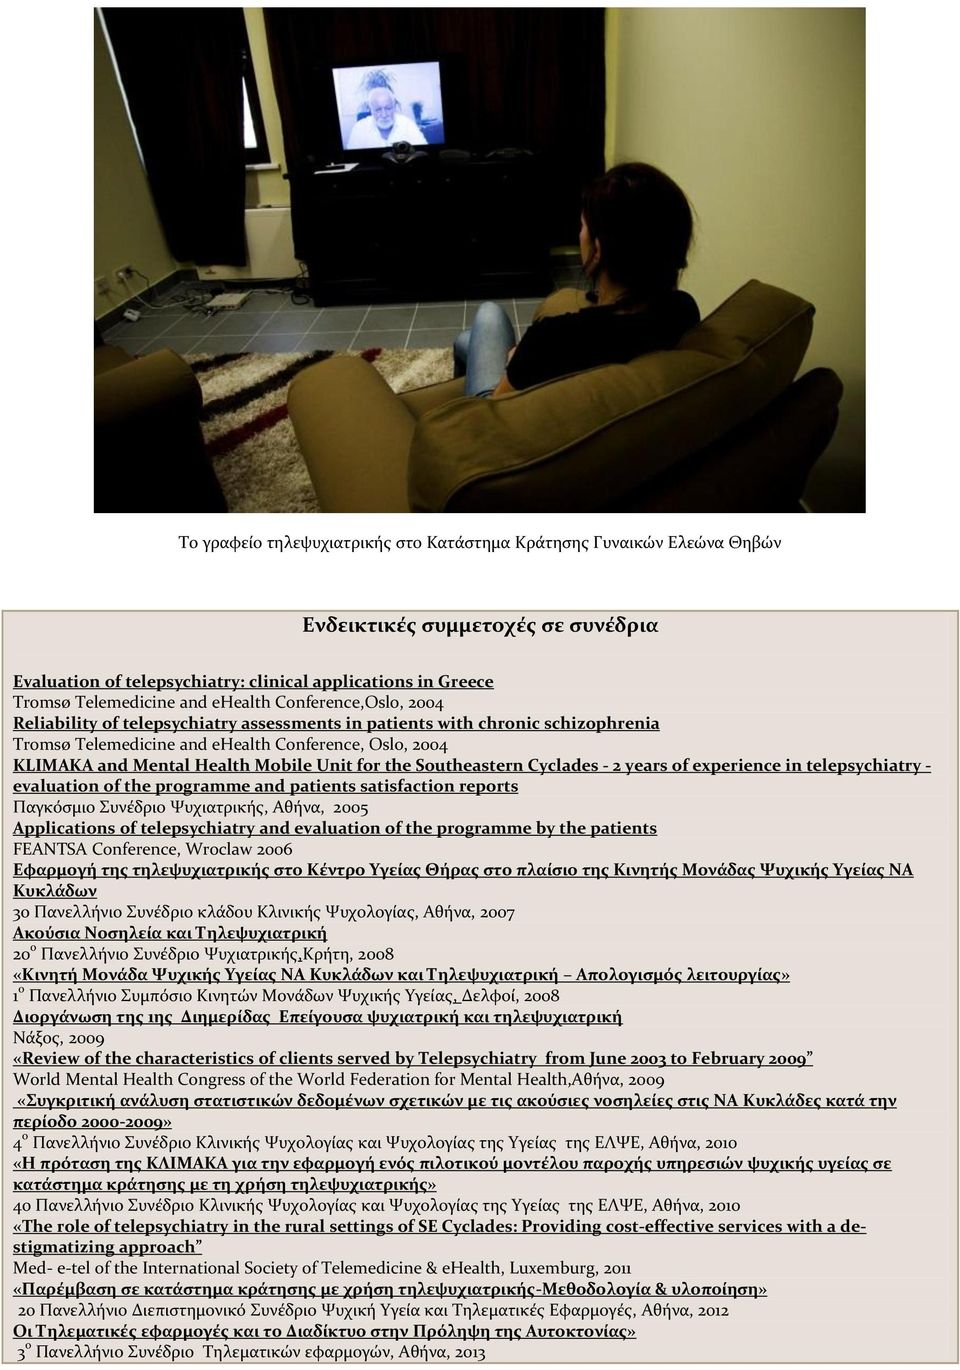 Unit for the Southeastern Cyclades - 2 years of experience in telepsychiatry - evaluation of the programme and patients satisfaction reports Παγκόσμιο Συνέδριο Ψυχιατρικής, Αθήνα, 2005 Applications